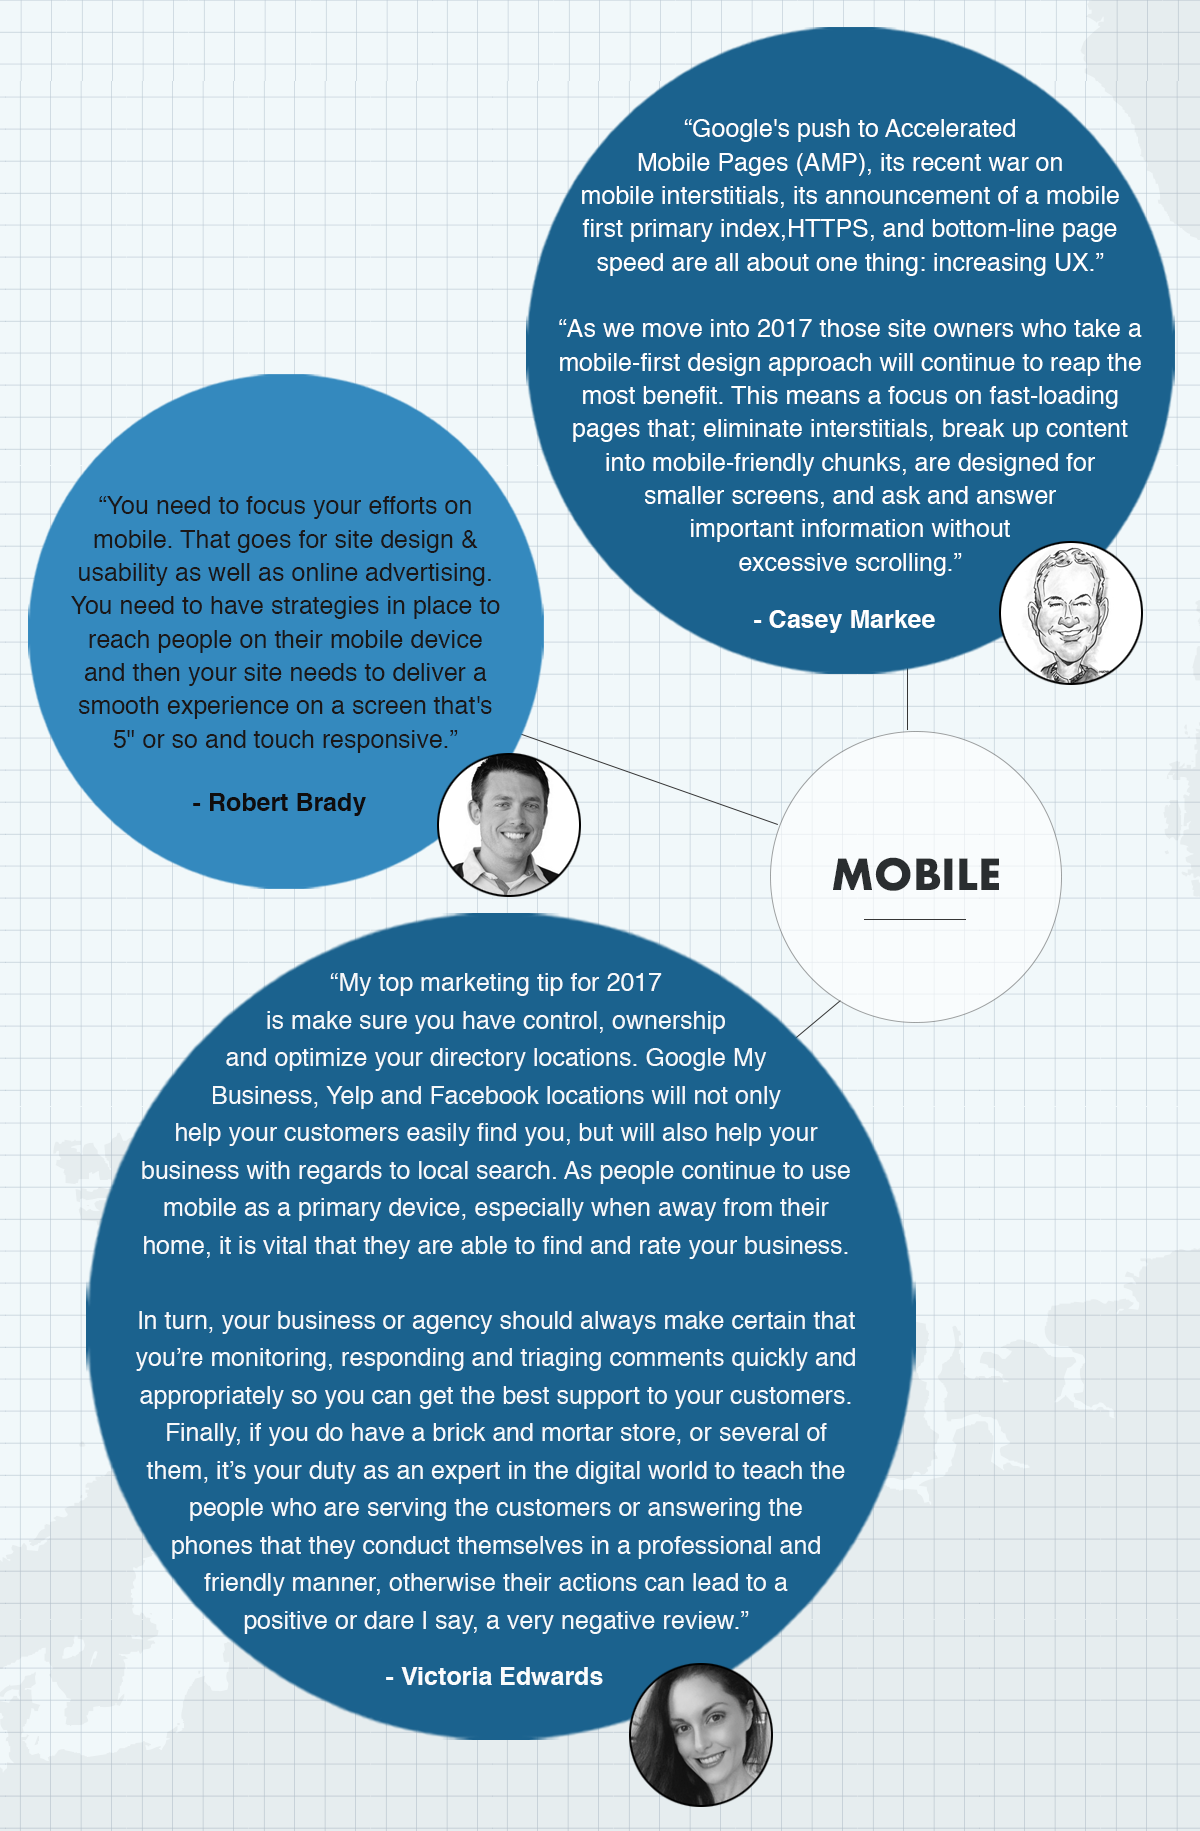 mobile marketing tips infographic